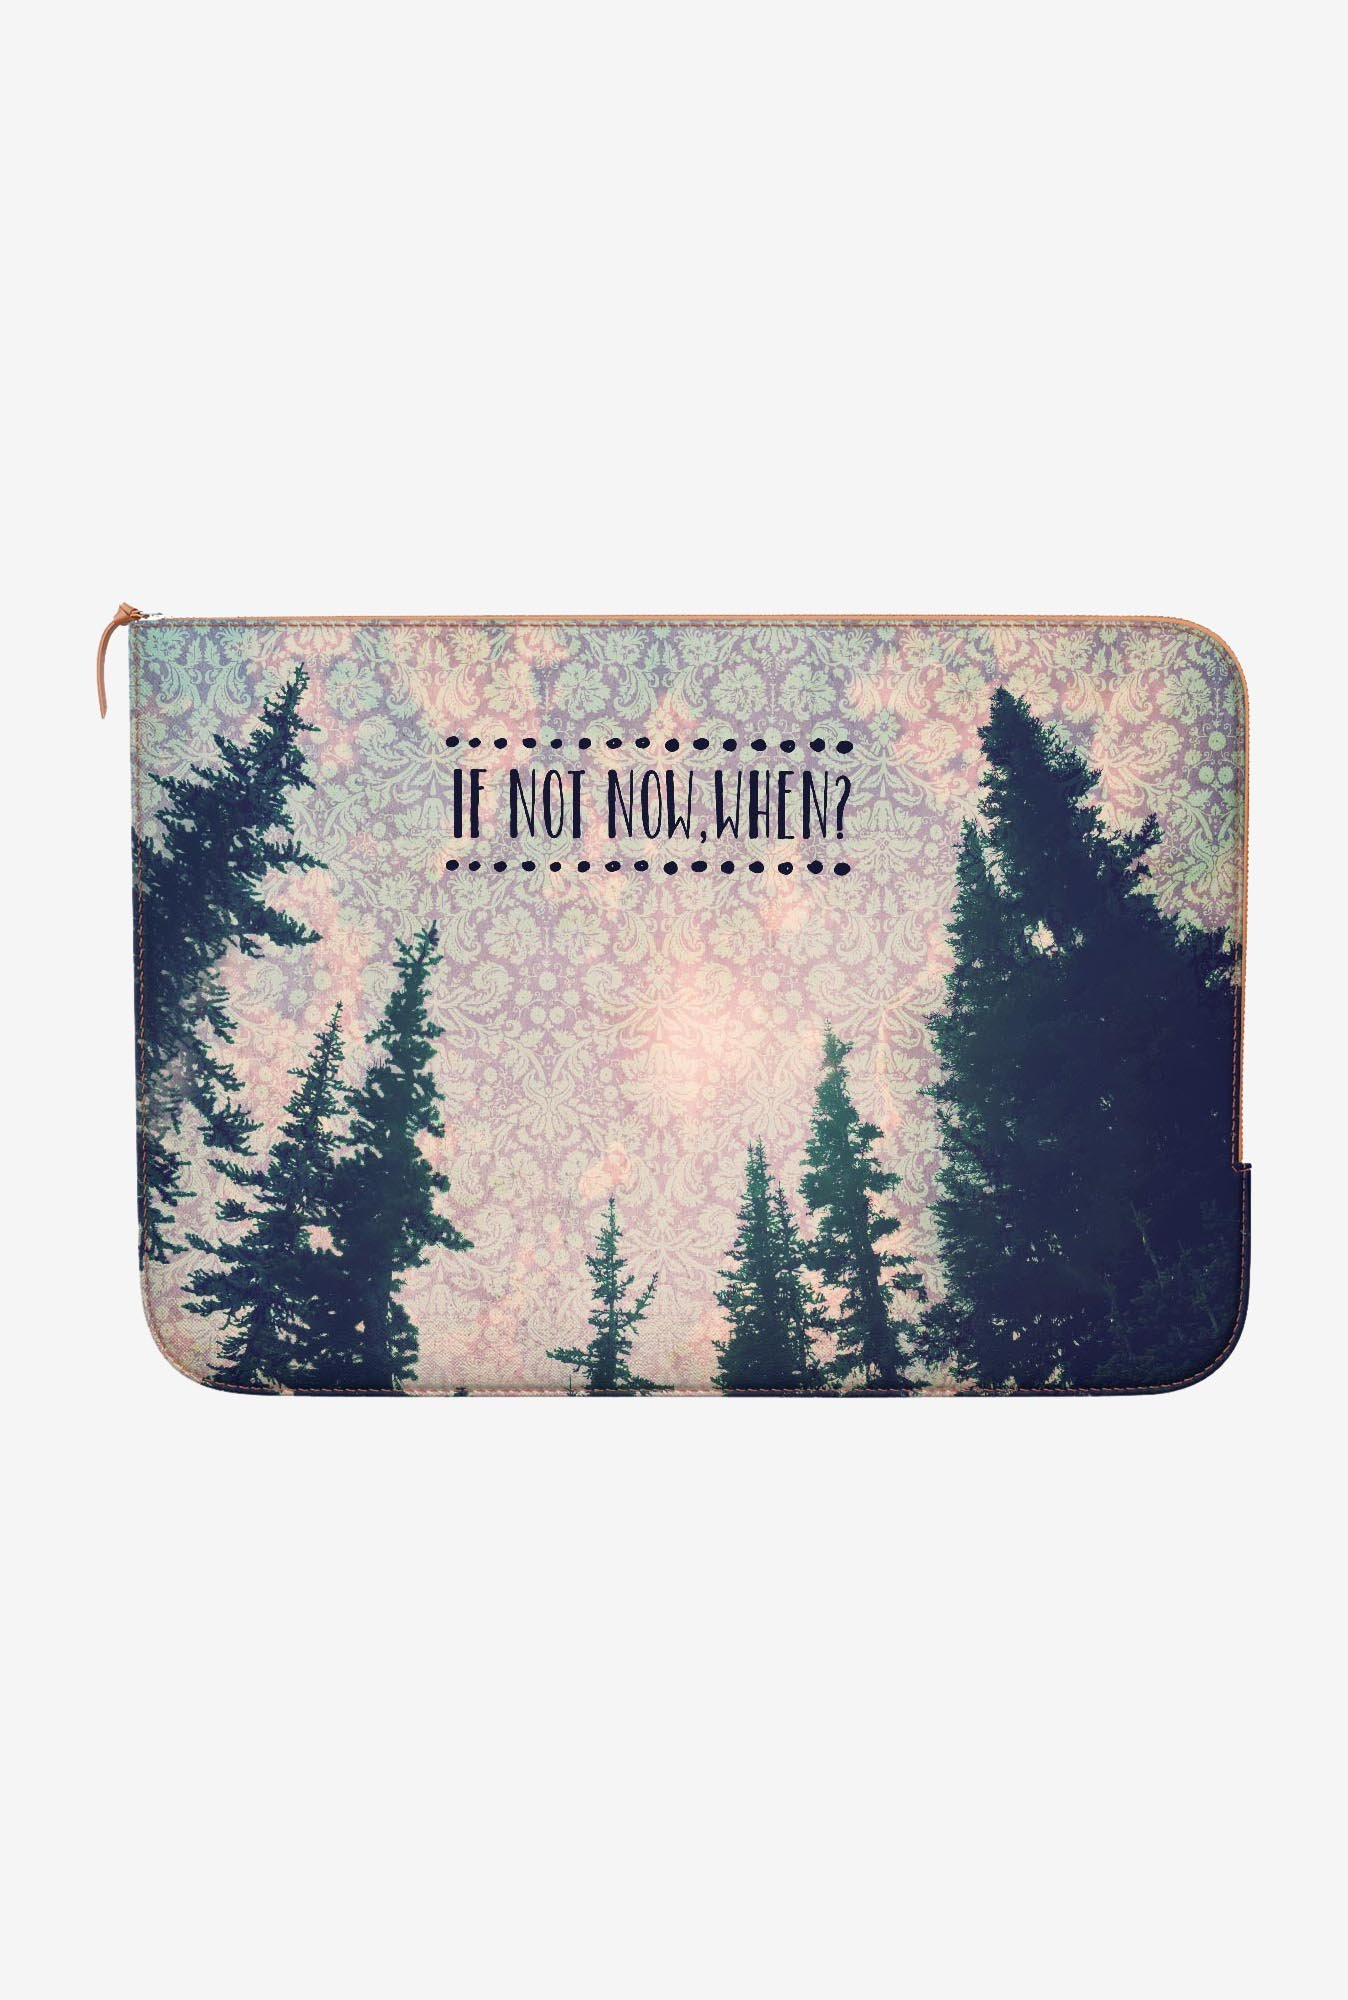 DailyObjects If Not Now MacBook Pro 15 Zippered Sleeve